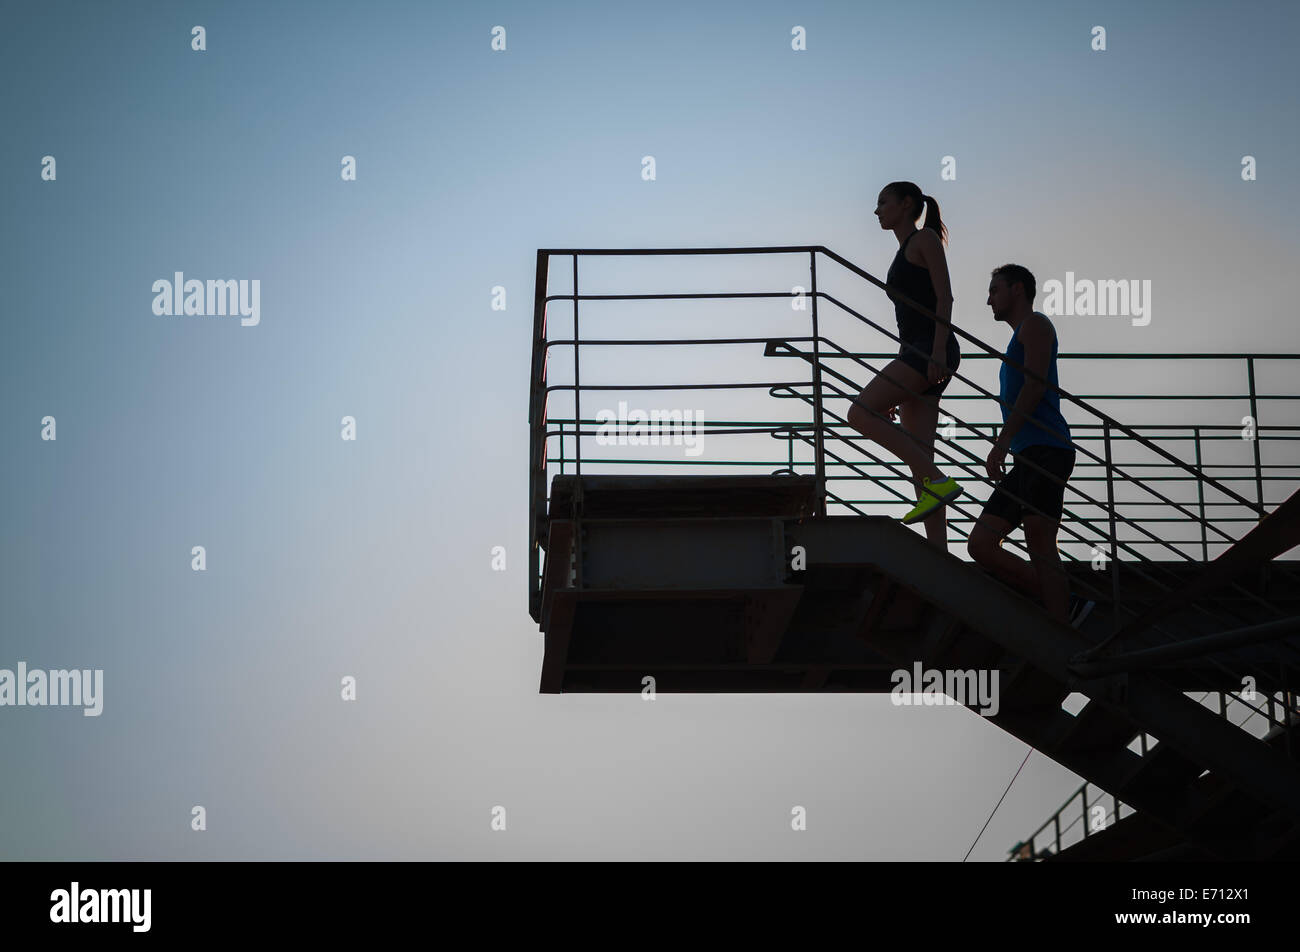 Man and woman going up steps, silhouette - Stock Image